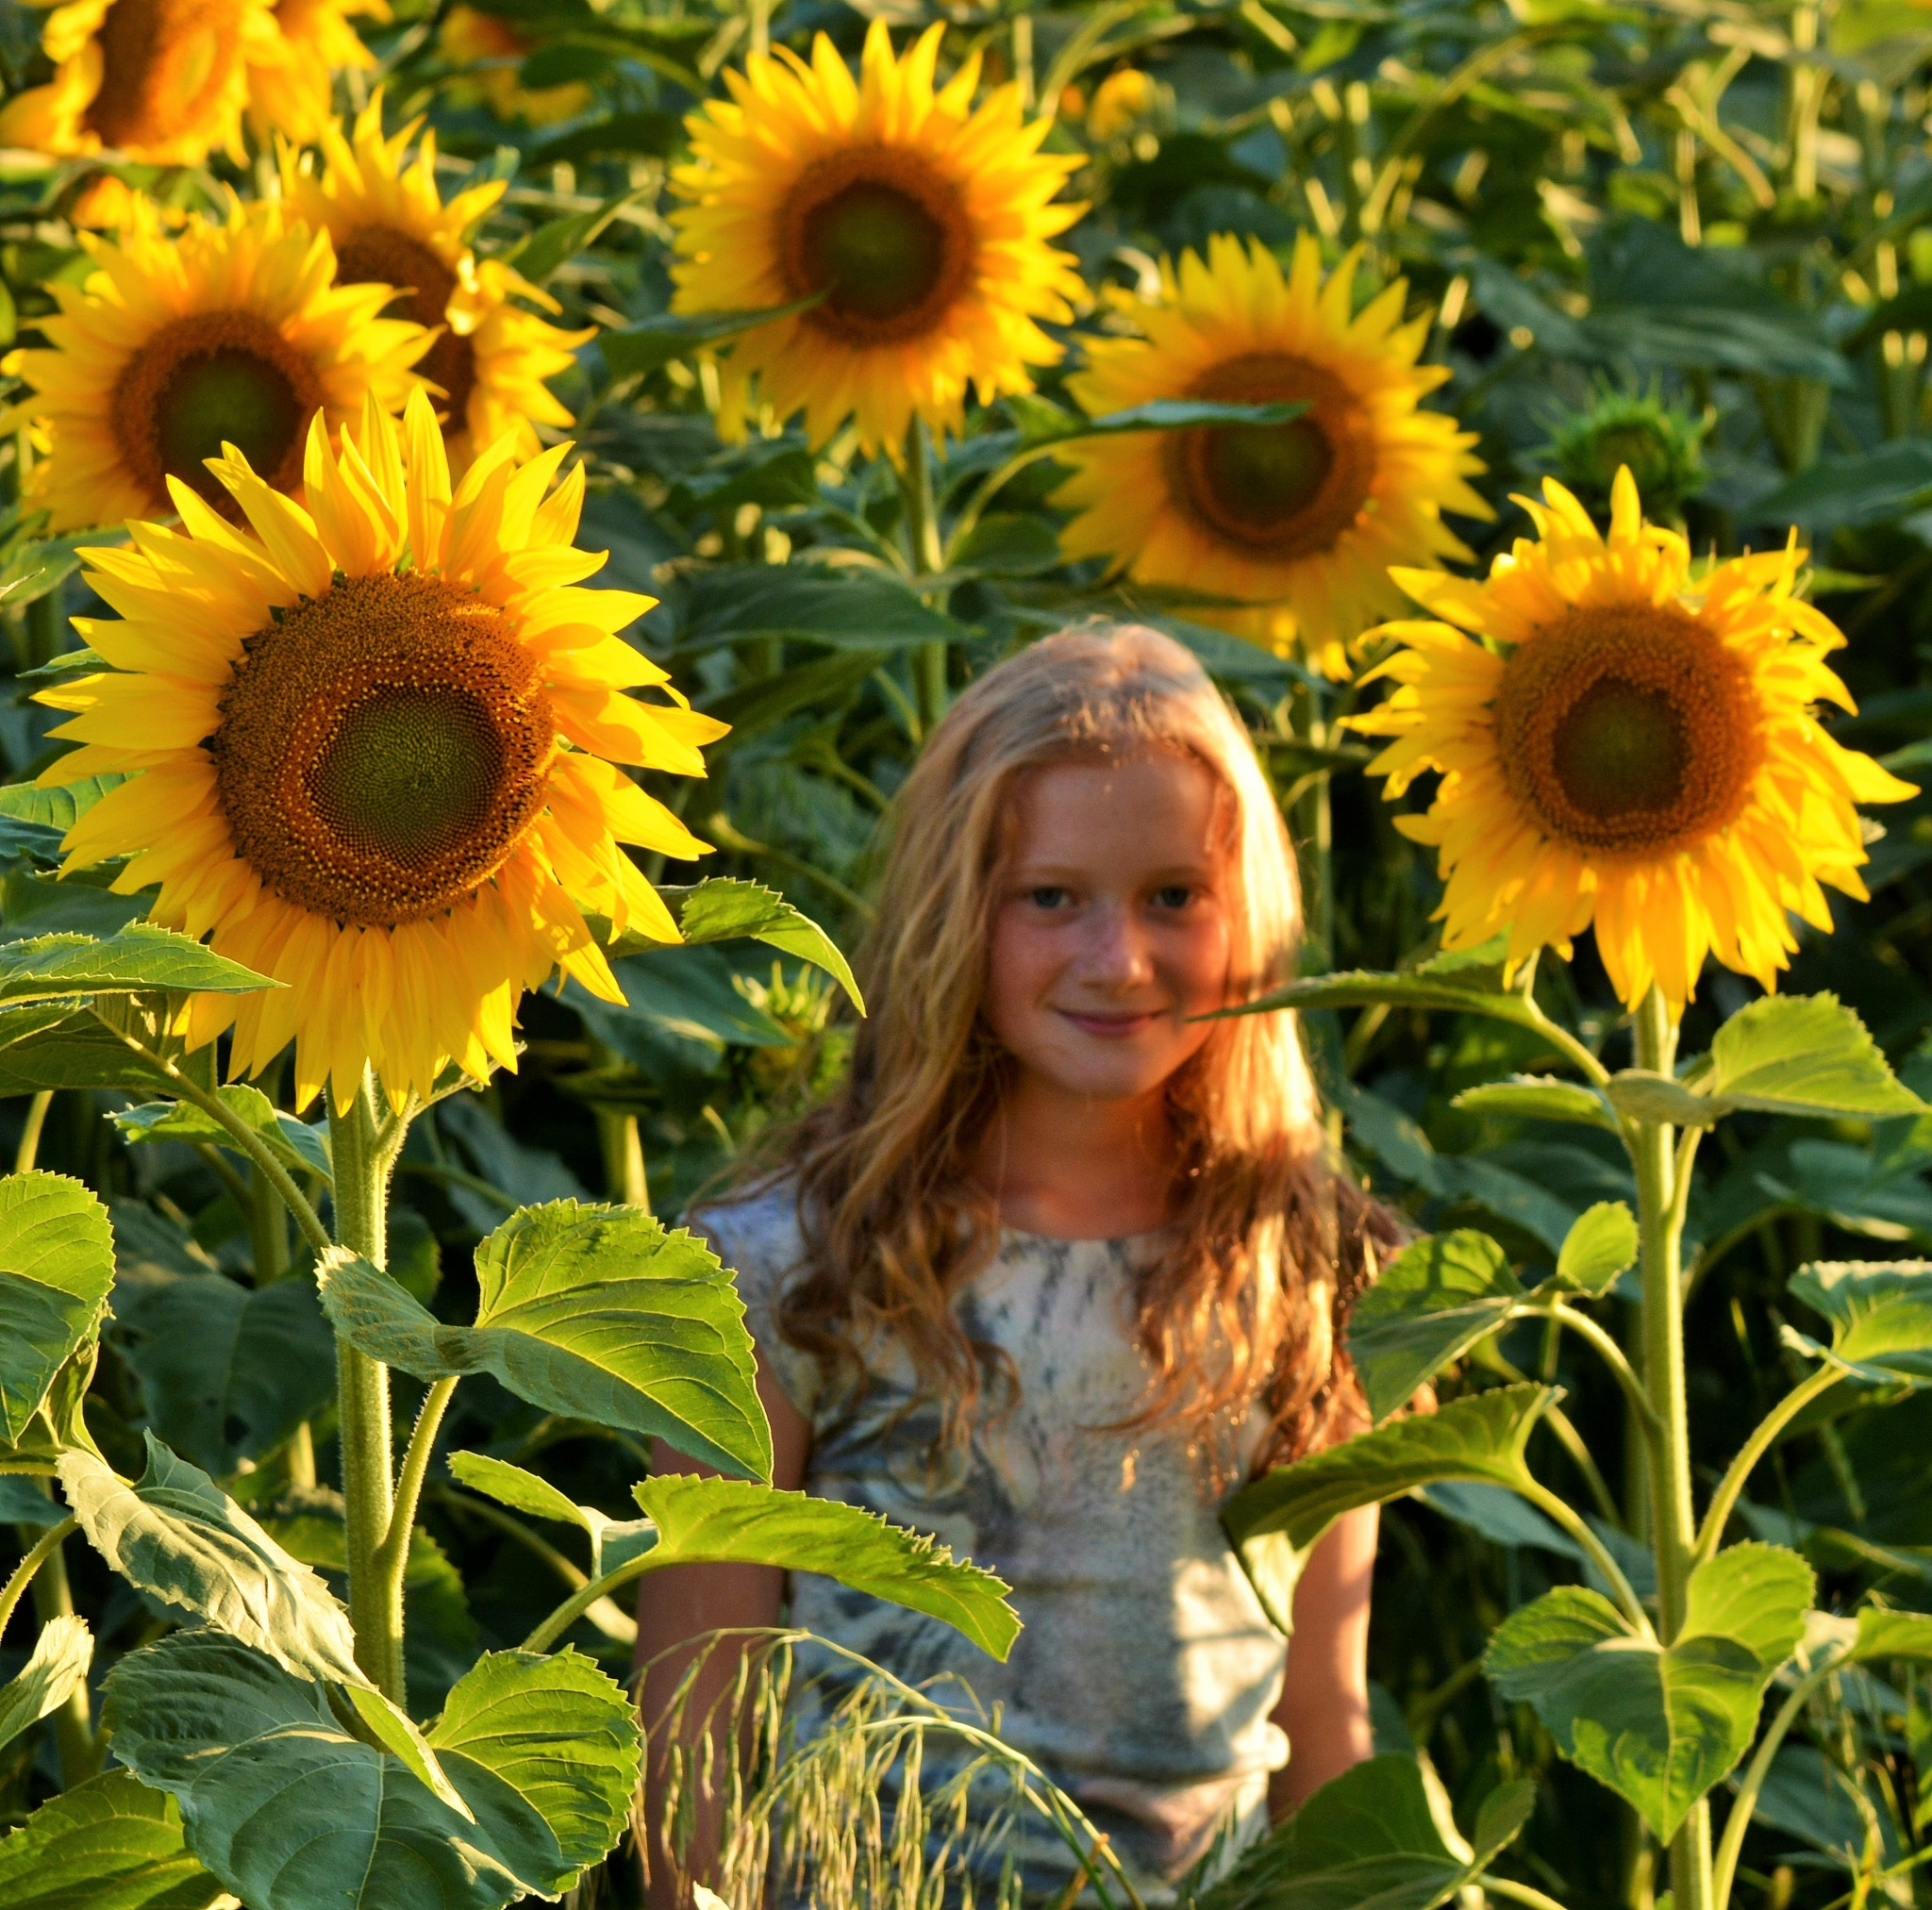 Girl among the sunflowers by alison16